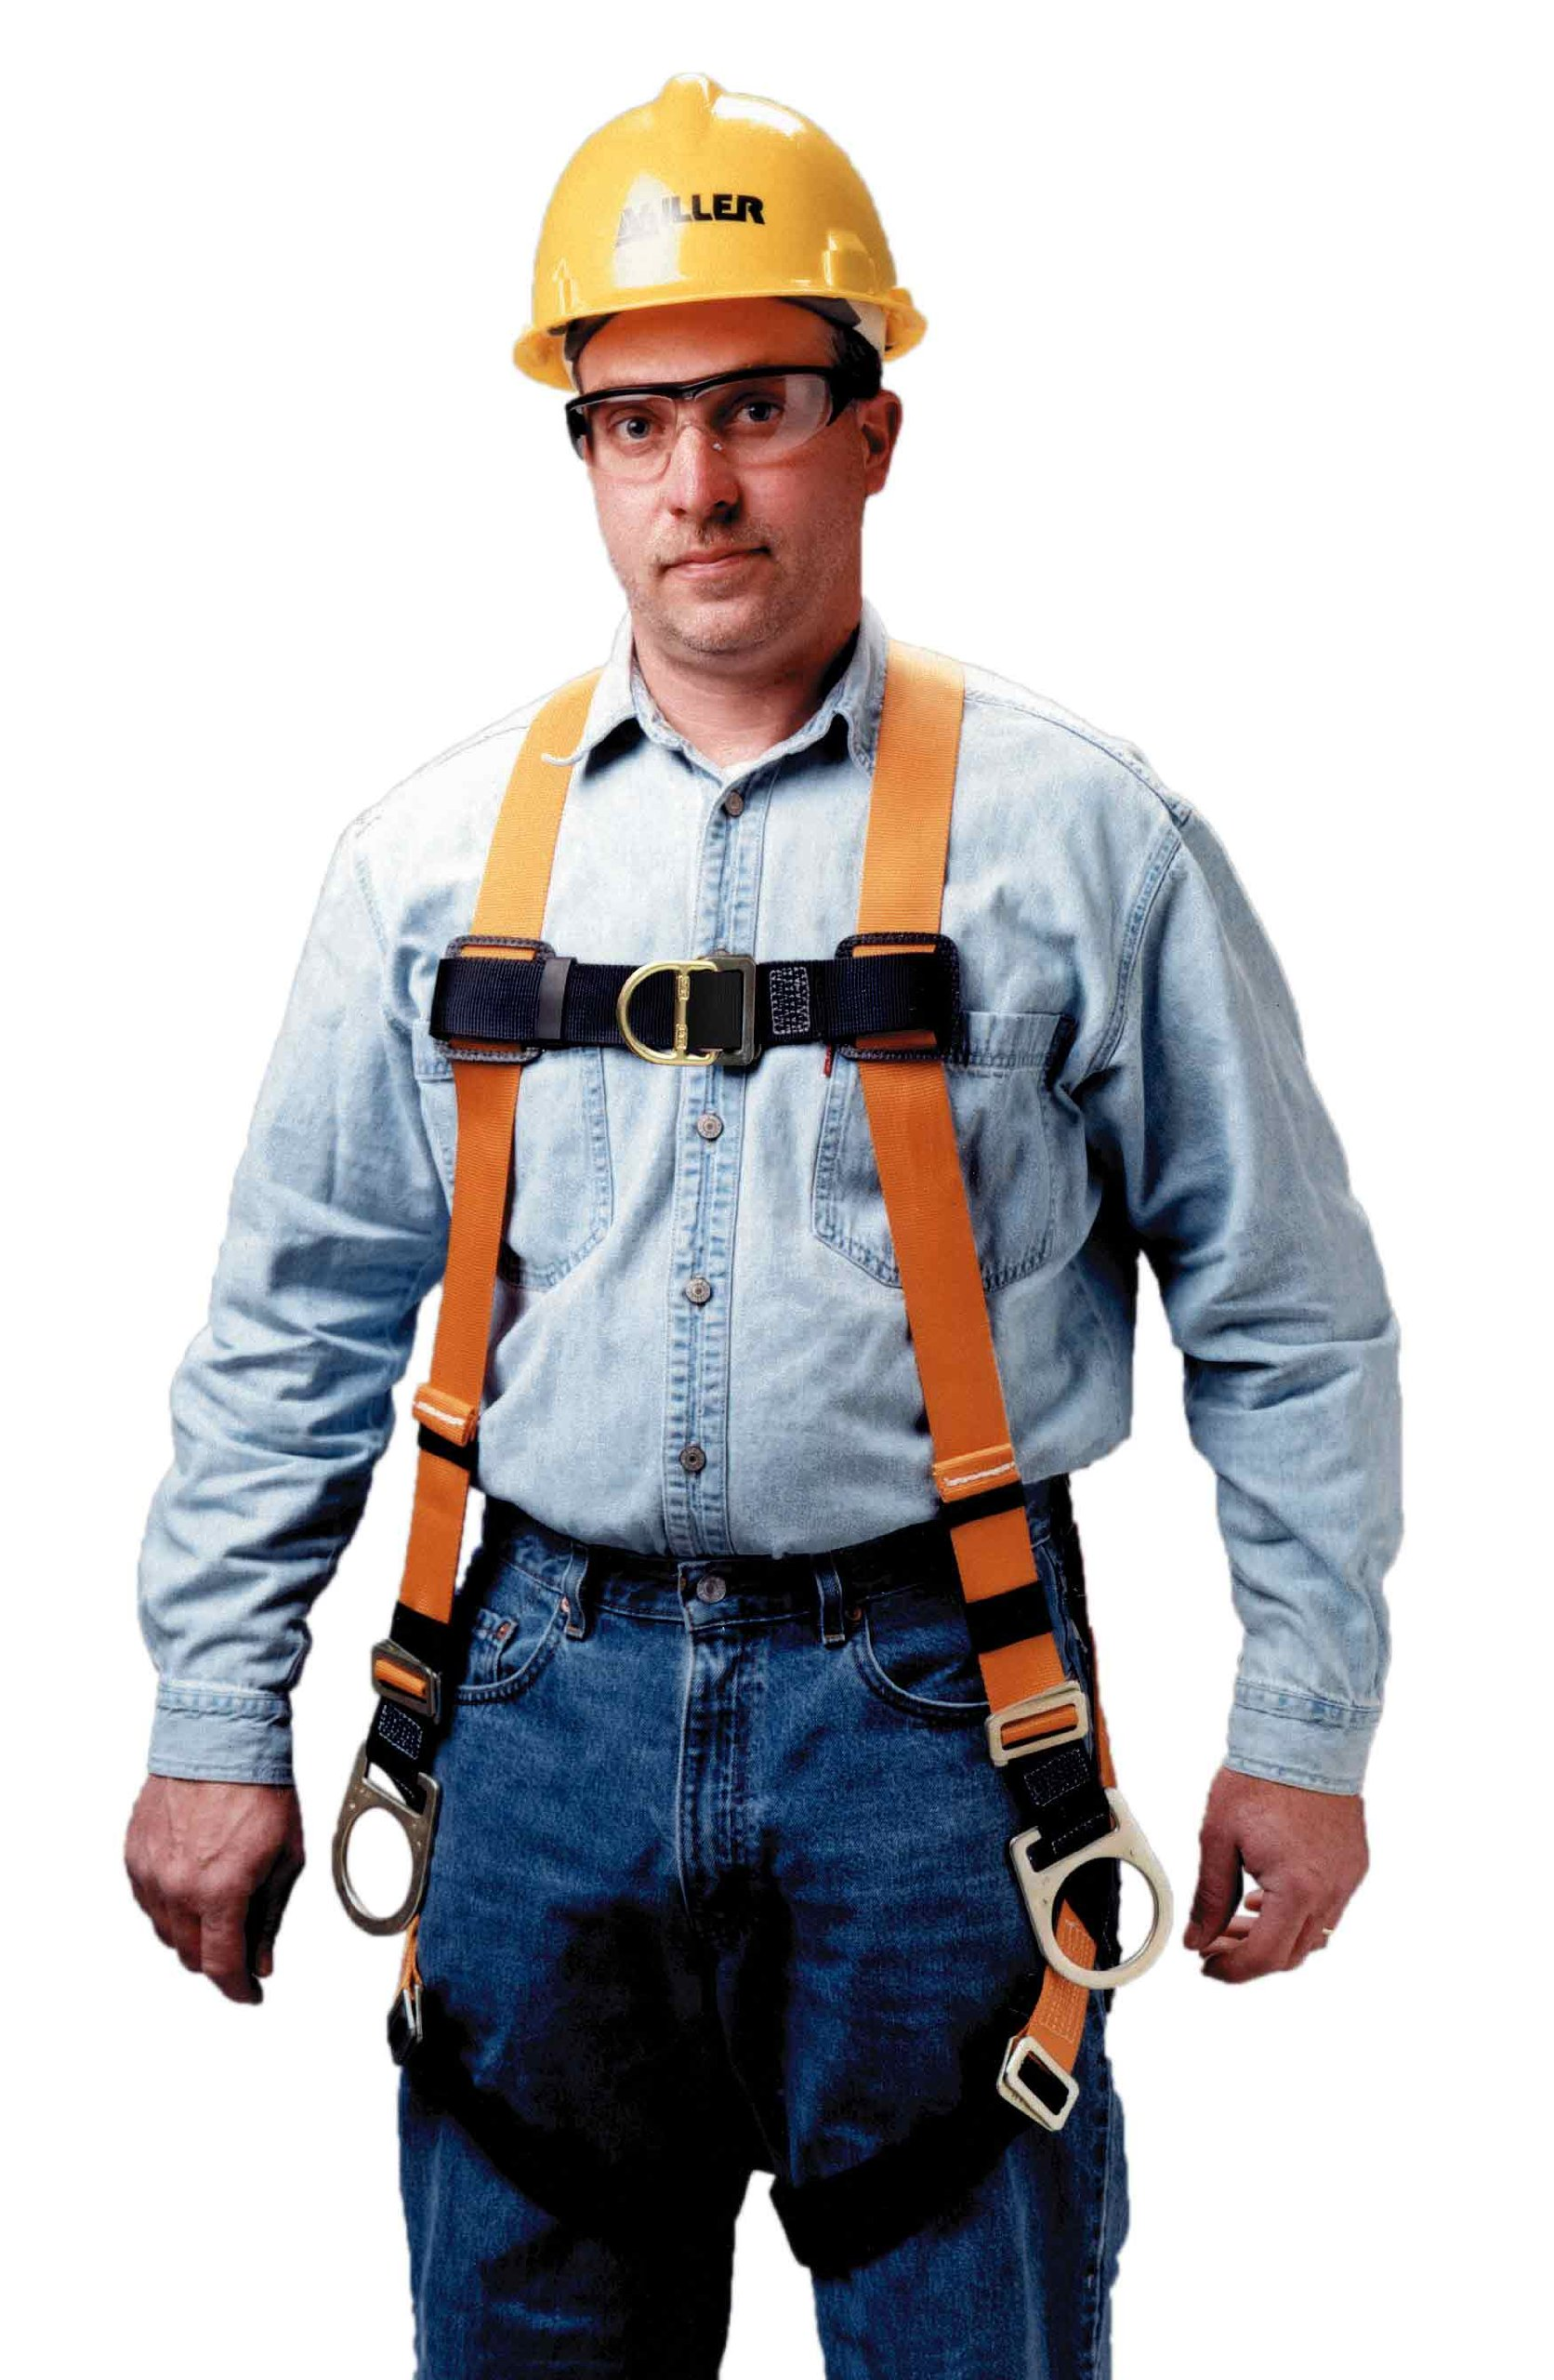 Miller Titan by Honeywell T4007FD/UAK Non-Stretch Harness with Front D-Ring, Universal